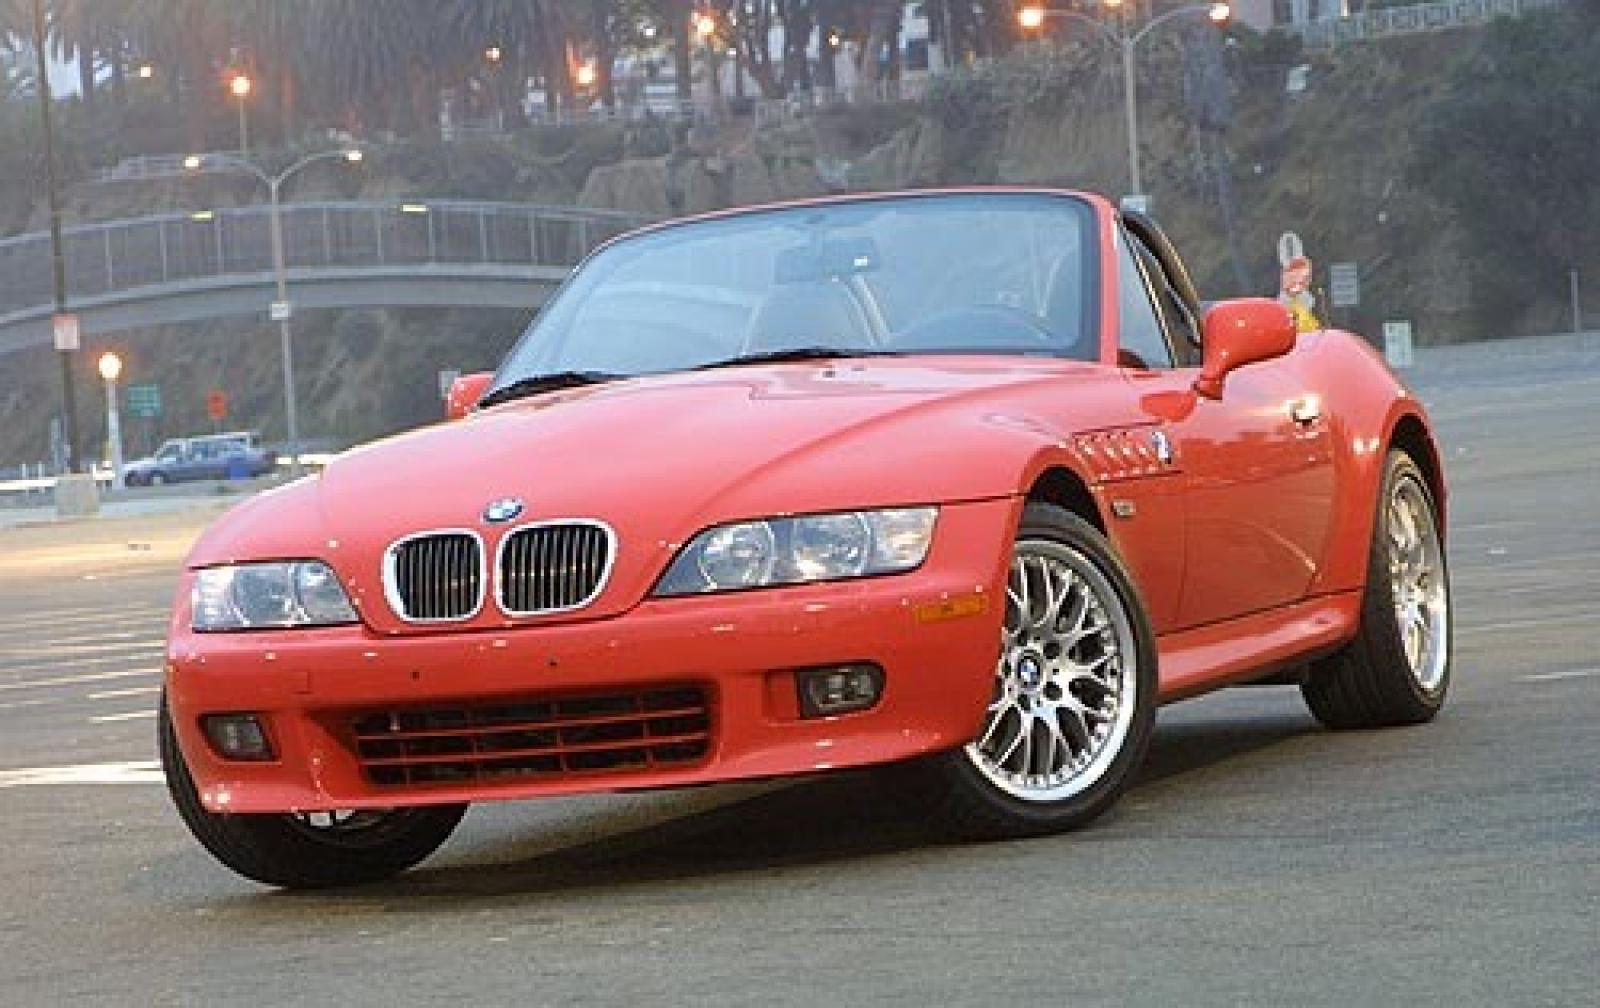 2002 bmw z3 information and photos zombiedrive. Black Bedroom Furniture Sets. Home Design Ideas